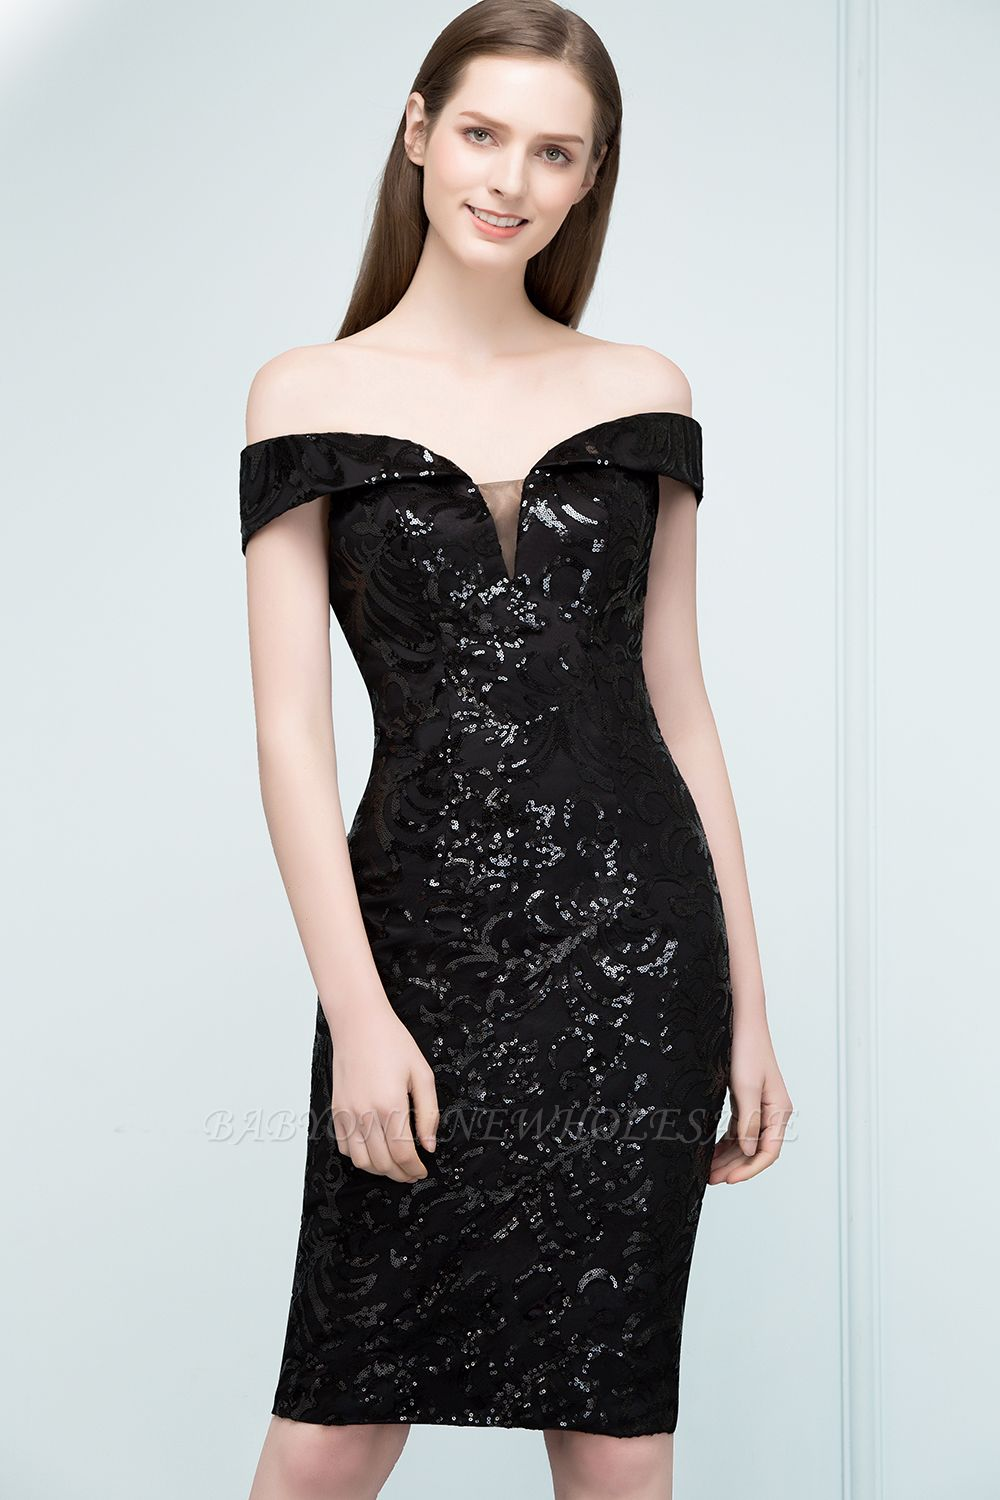 VENUS | Sheath Off-shoulder Short Sequined Black Prom Dresses